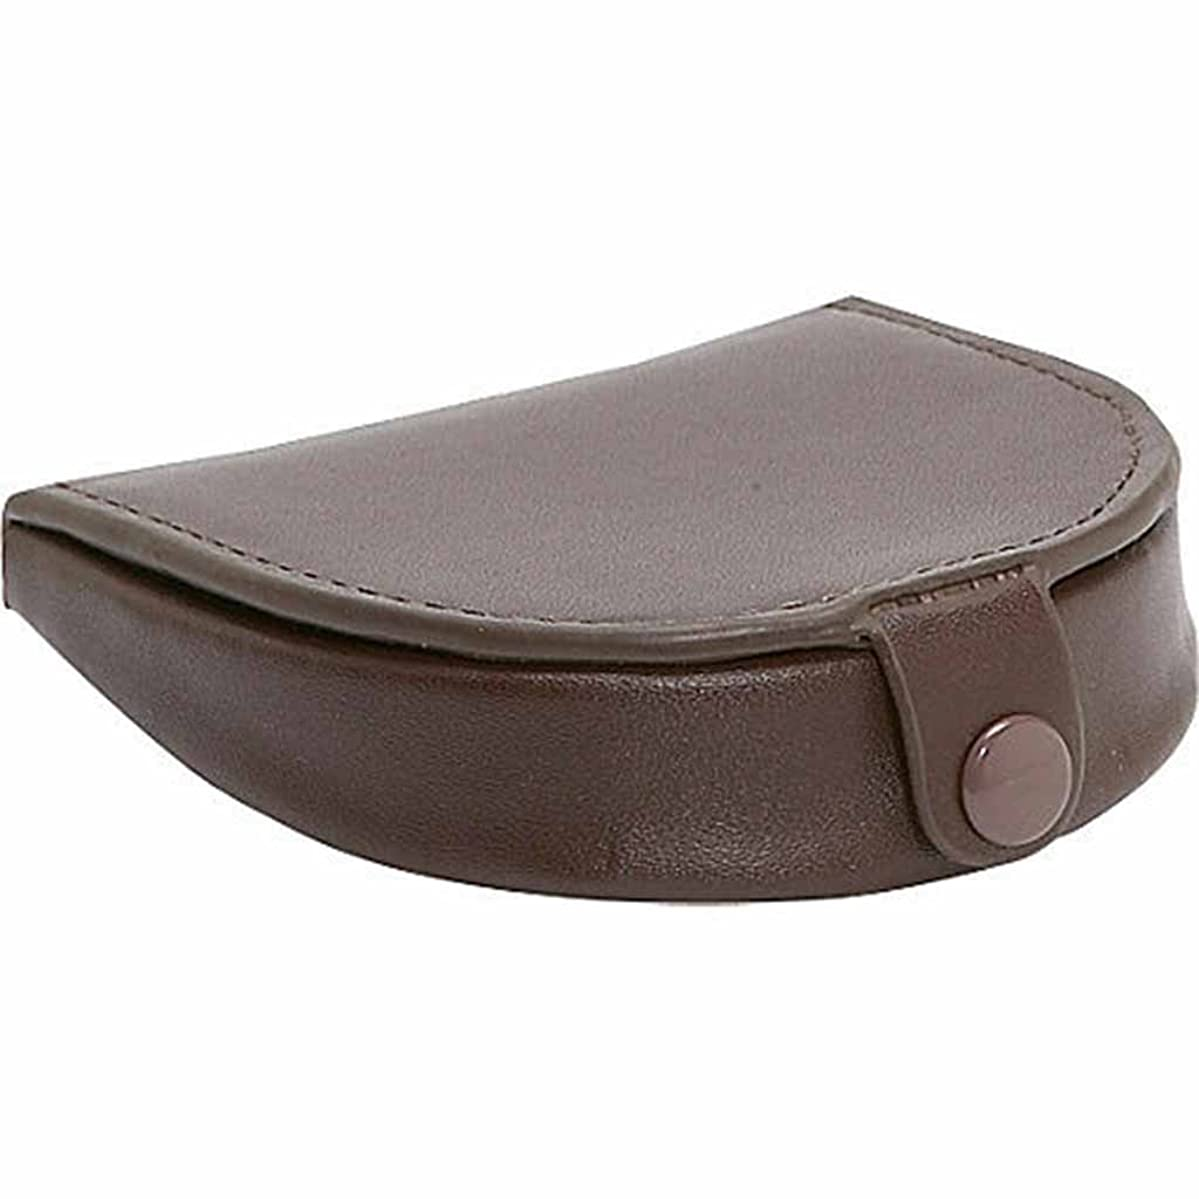 Wallet Royce Leather Coin Purse - Brown Ladies Cardex Wallet NEW